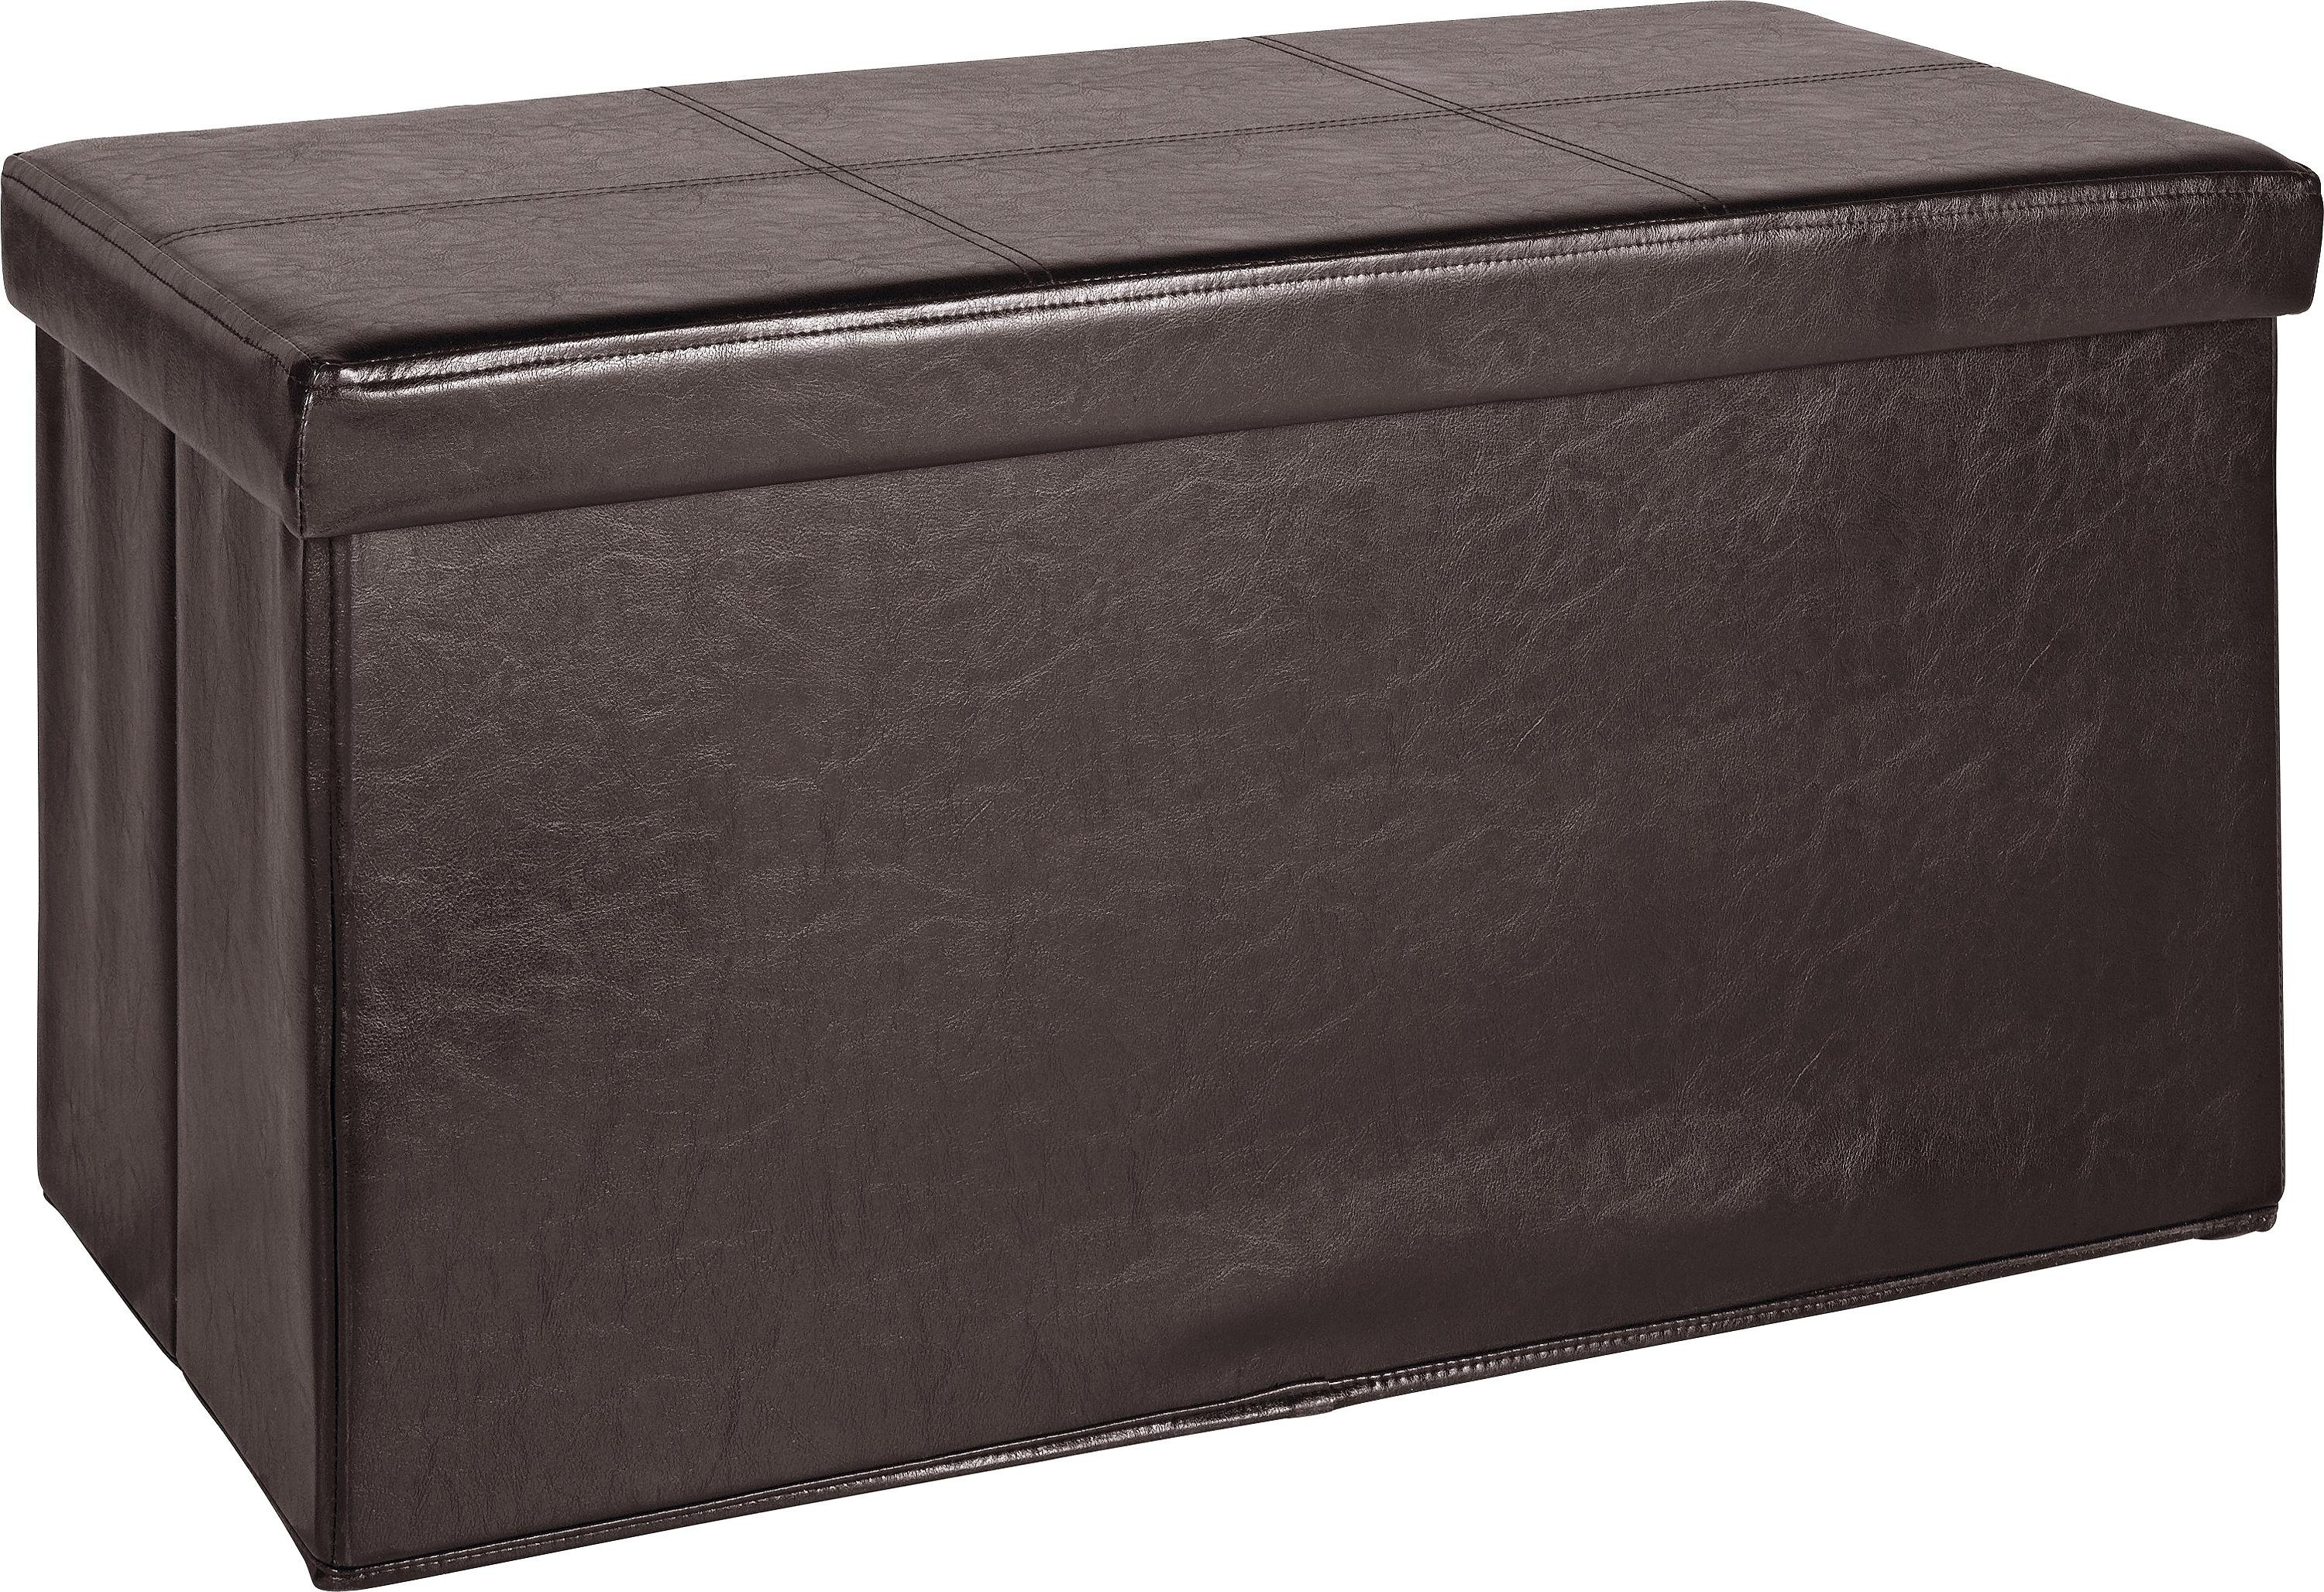 Buy HOME Large Leather Effect Ottoman Stitching Detail Brown